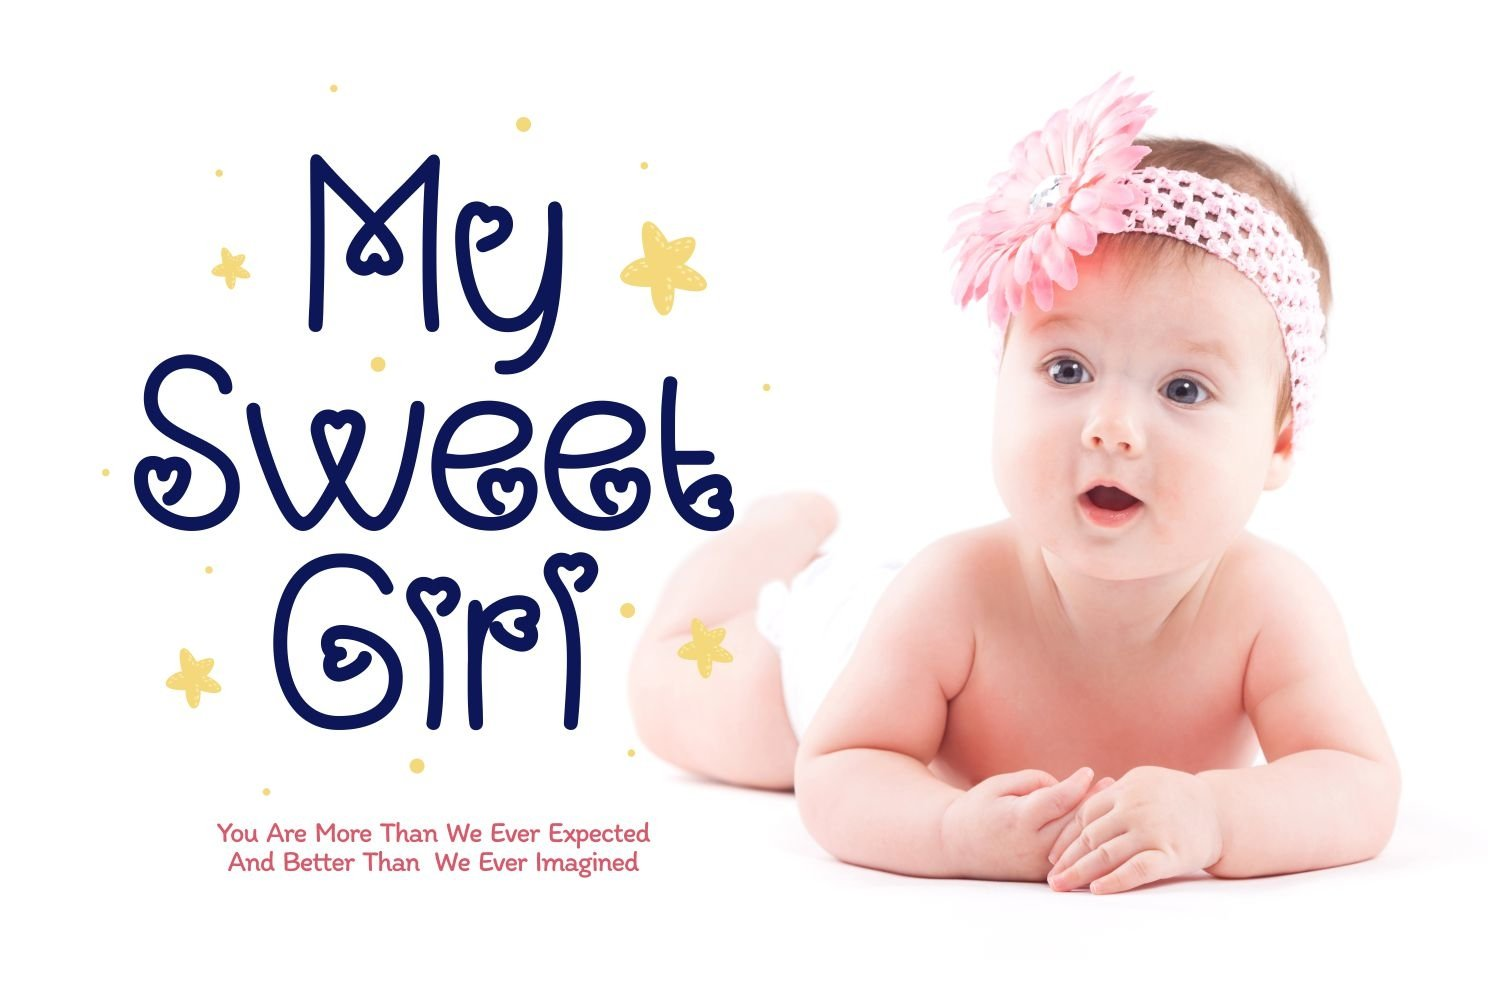 Baby Girl - Cute & Playful Display Font example image 2